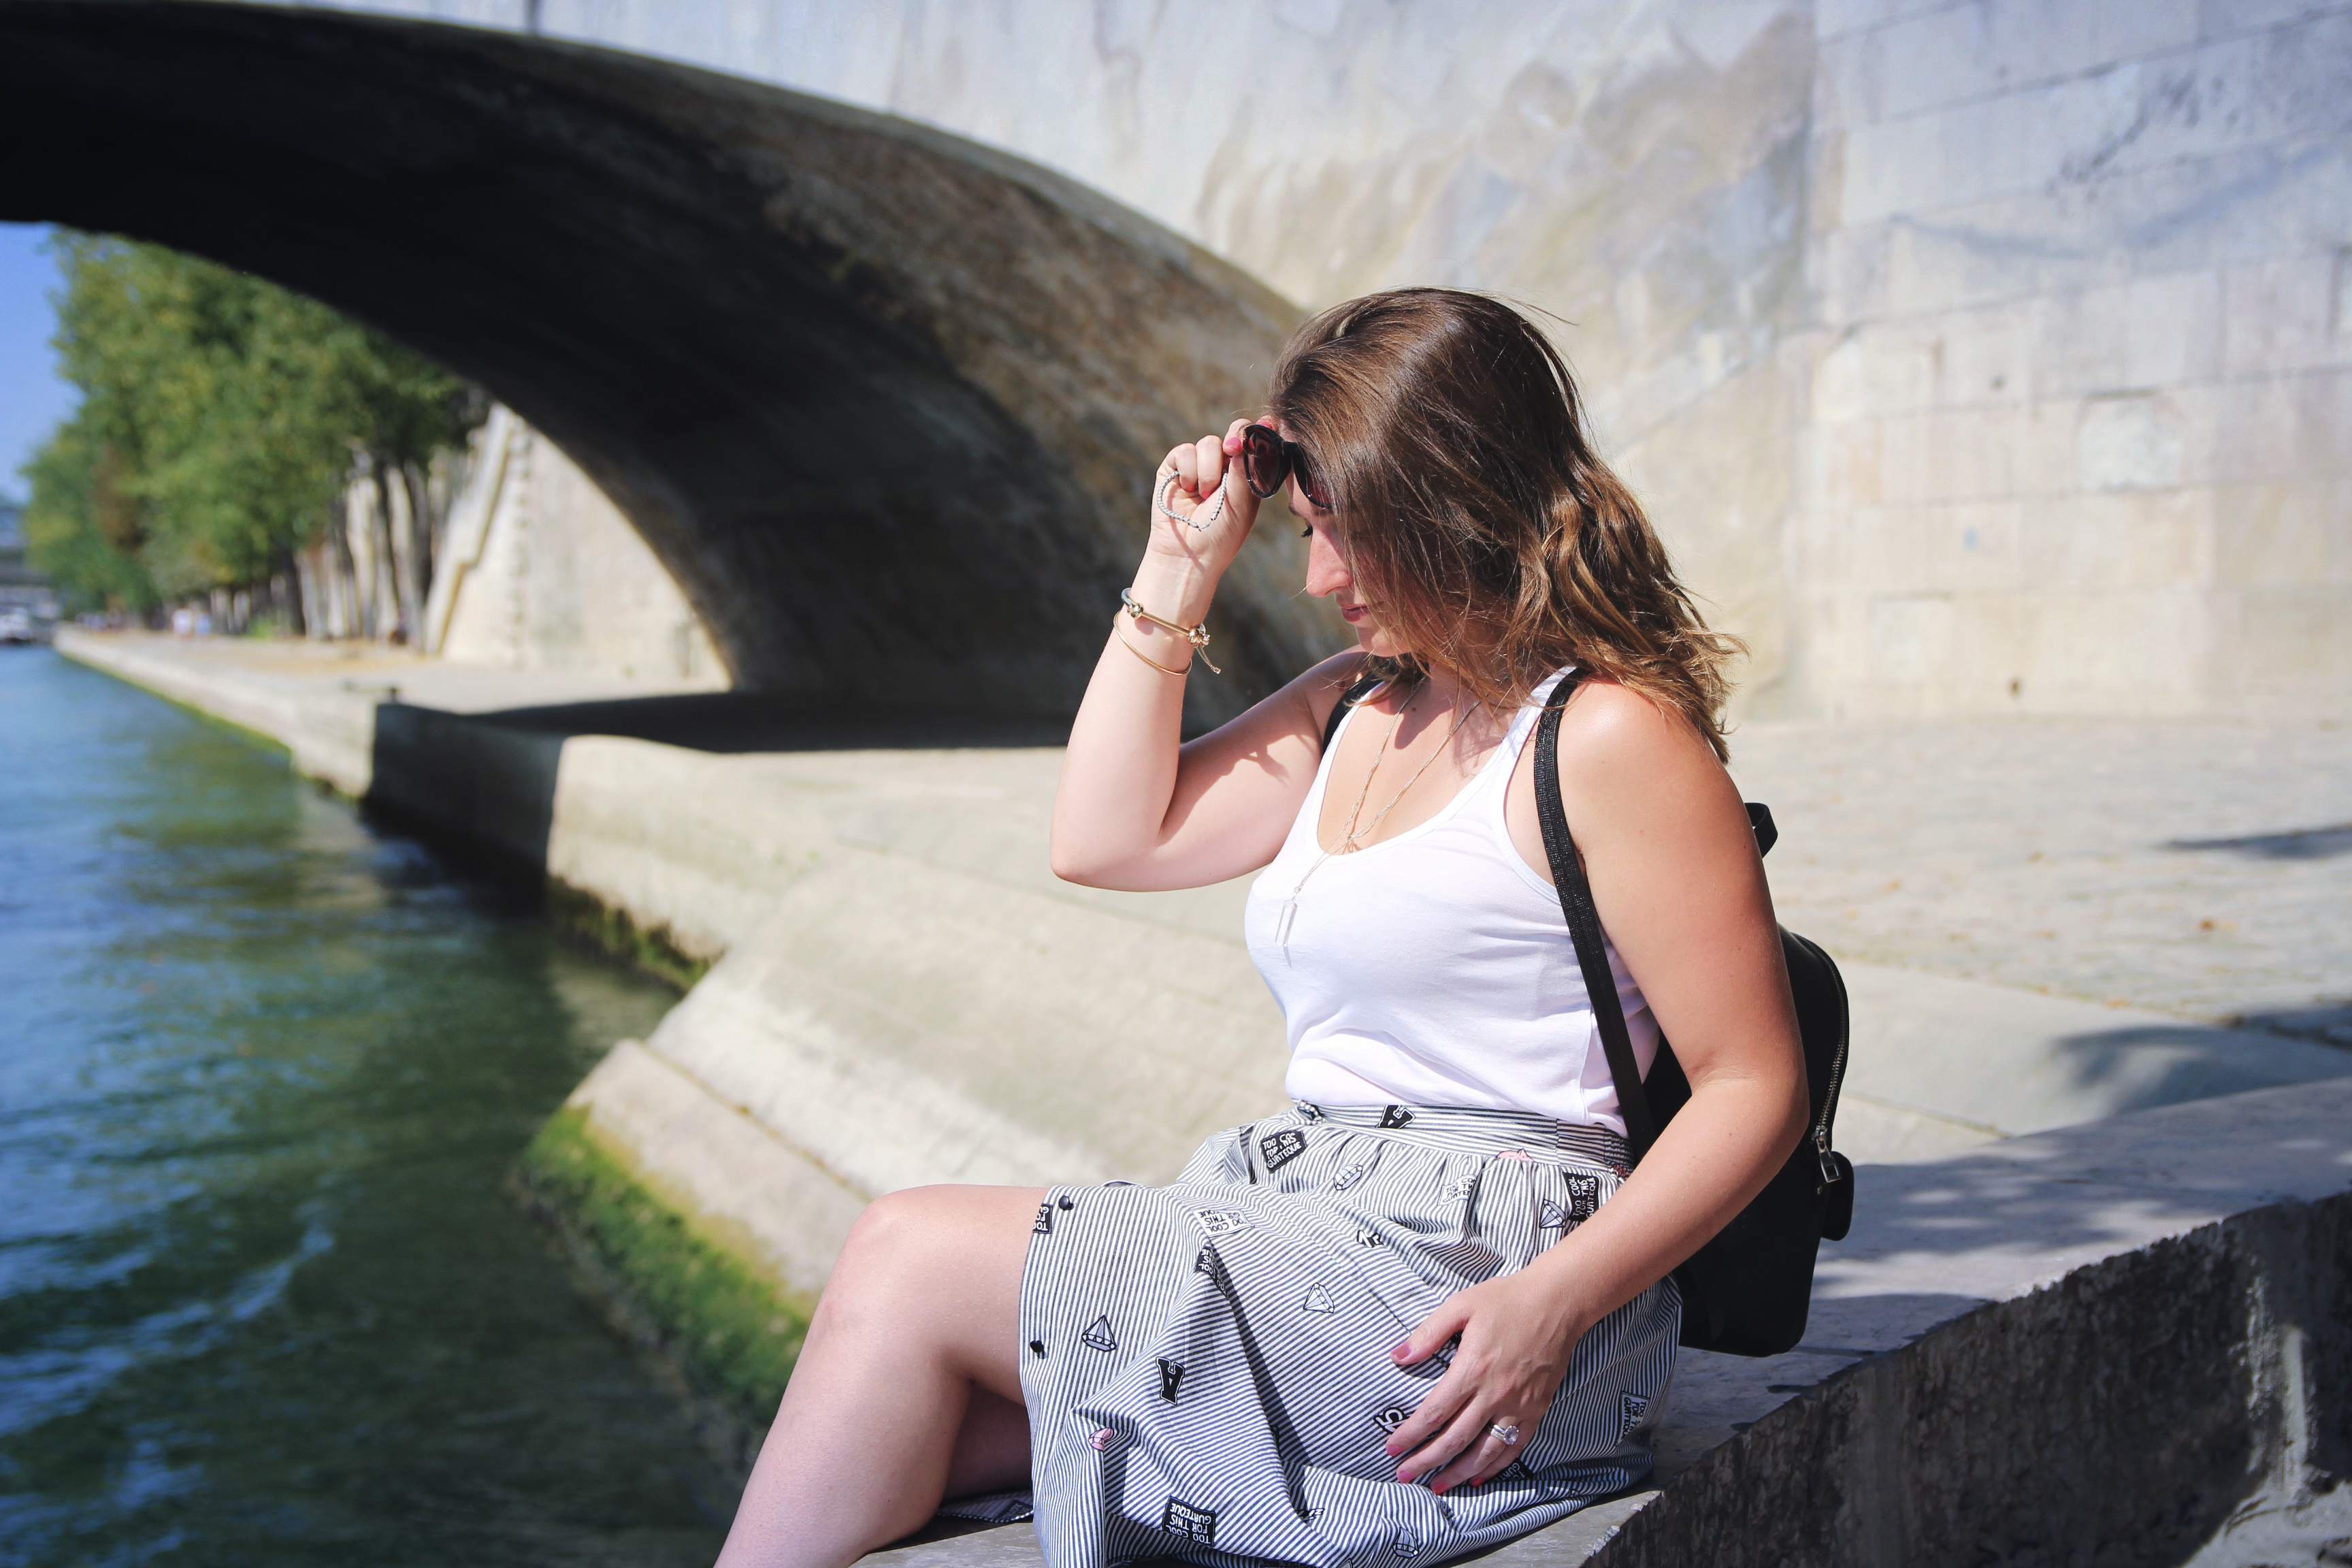 lookbook-oldschool-strip-skirt-fahionblogger-influencer-seralynepointcom-paris-bergesdeseine-4105